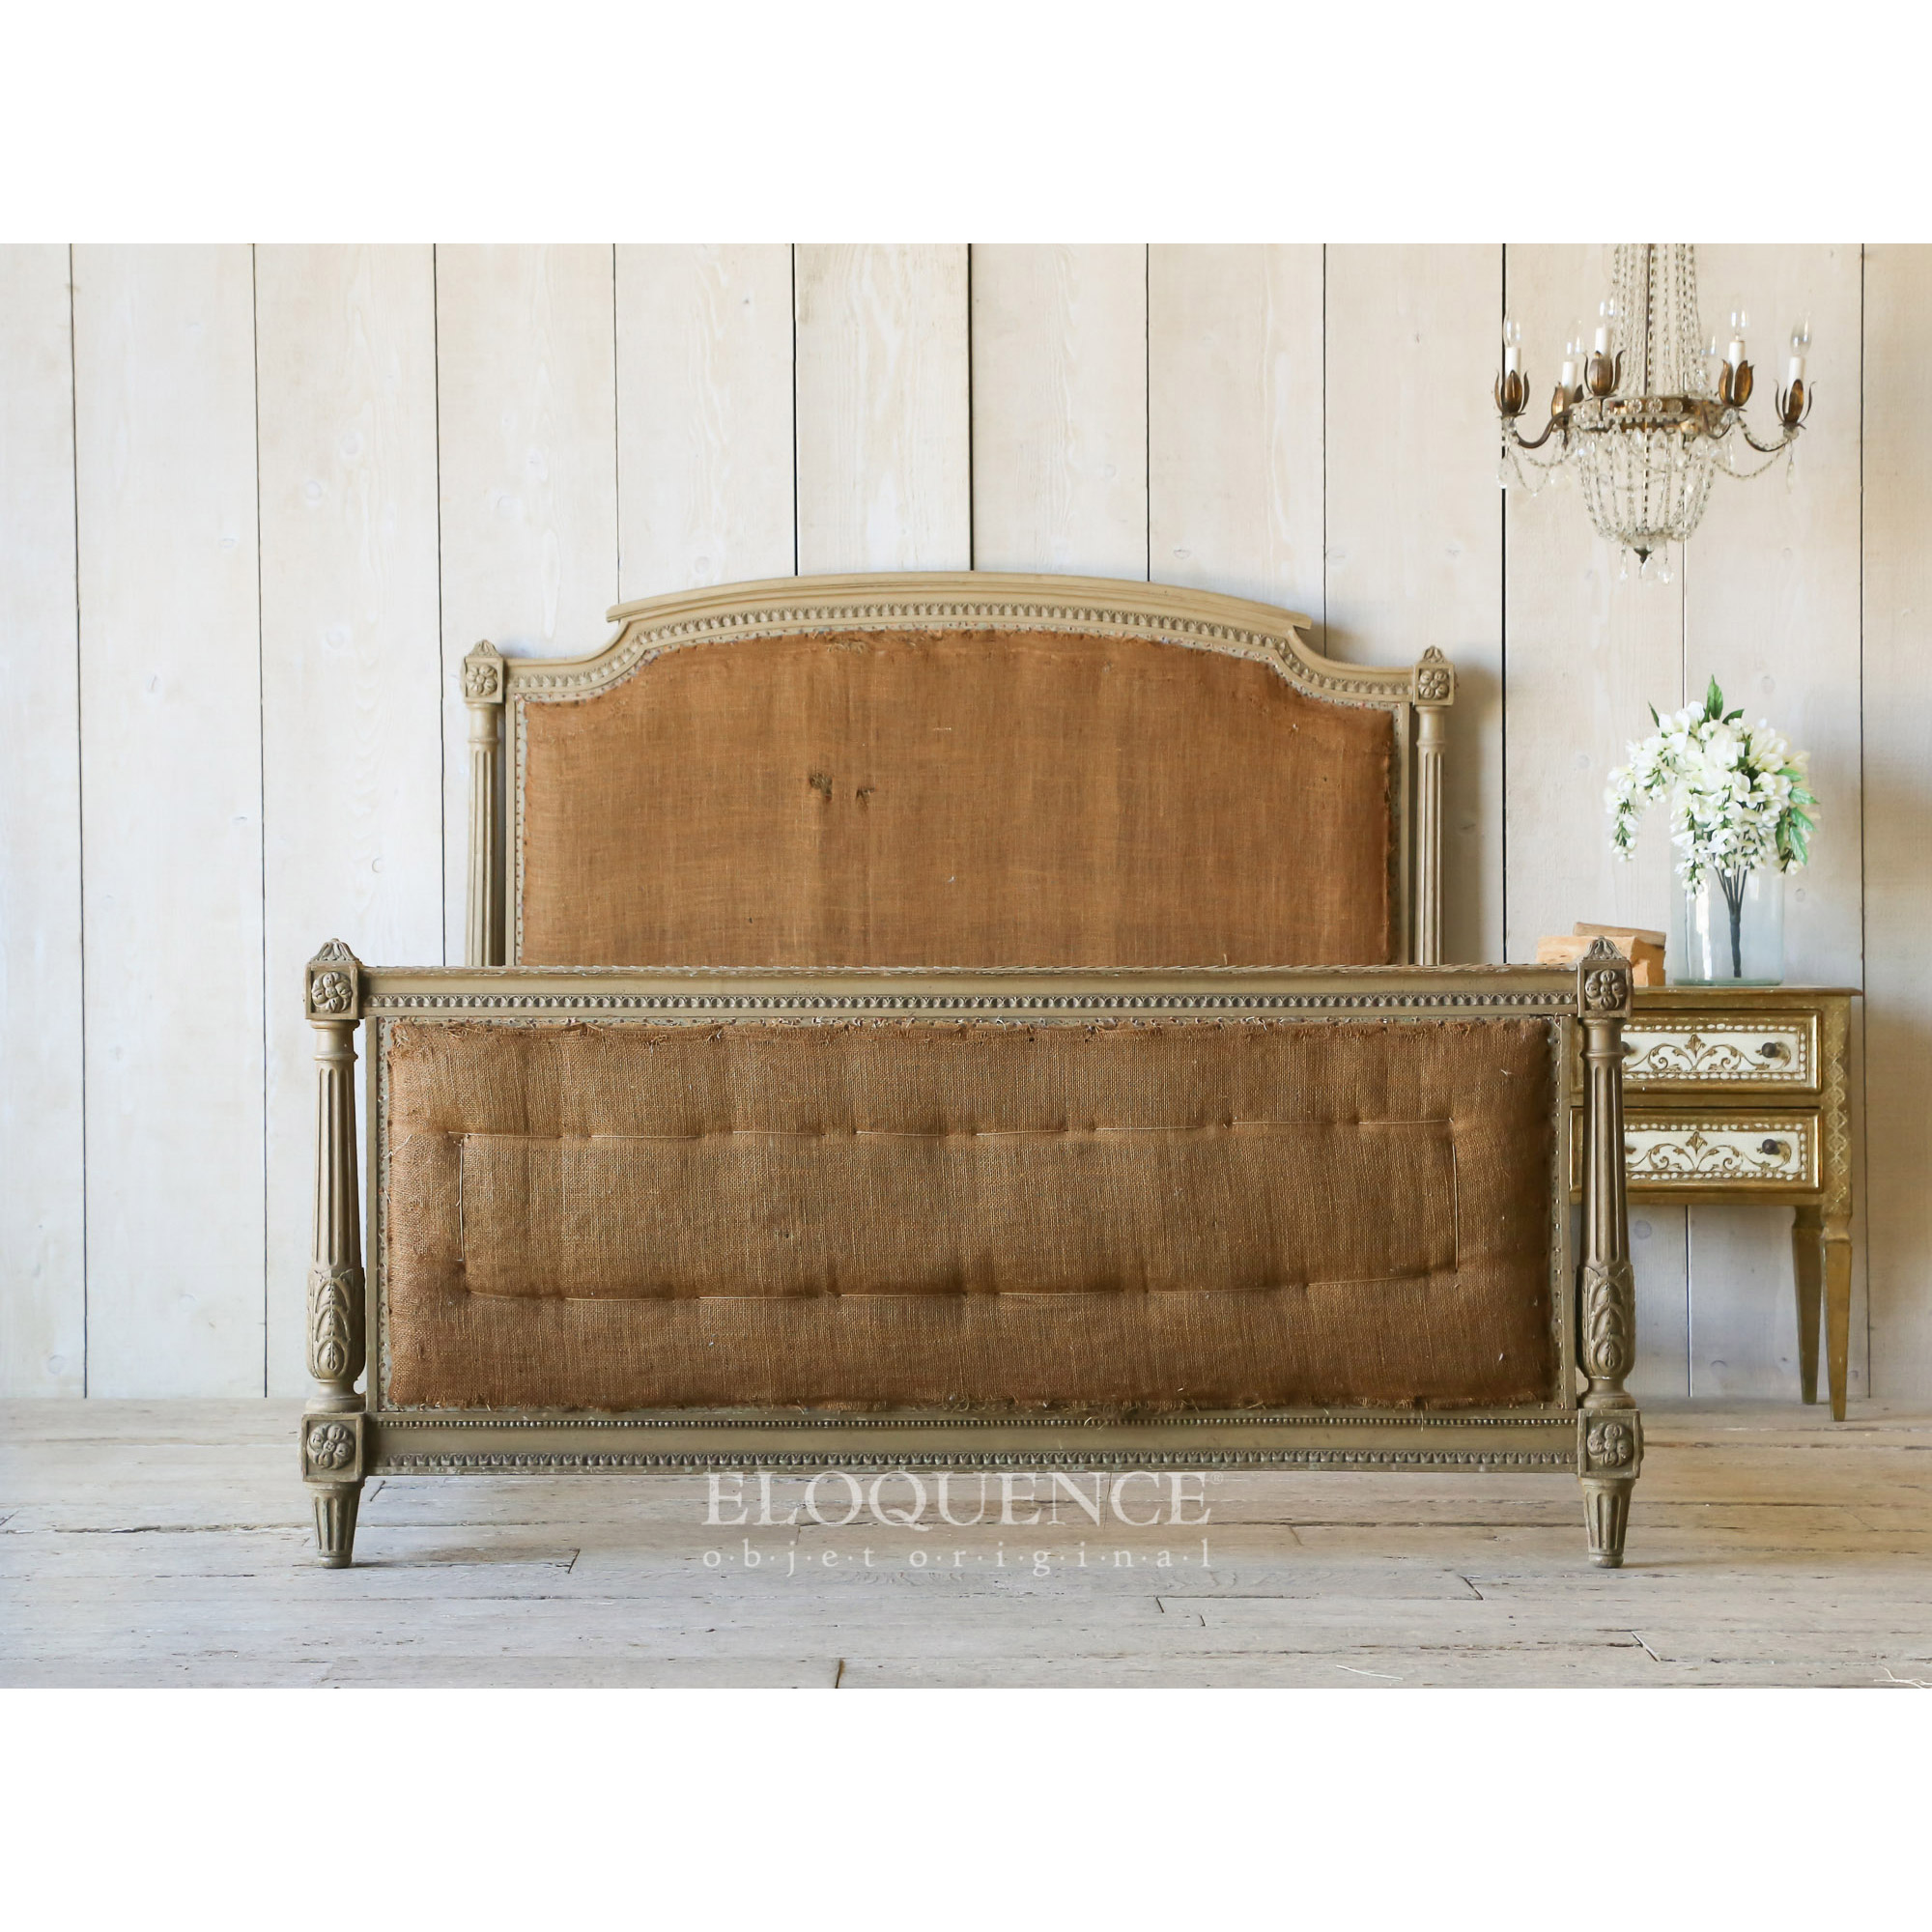 Eloquence® Antique French Olive Green Wood Full Size Bed 1870